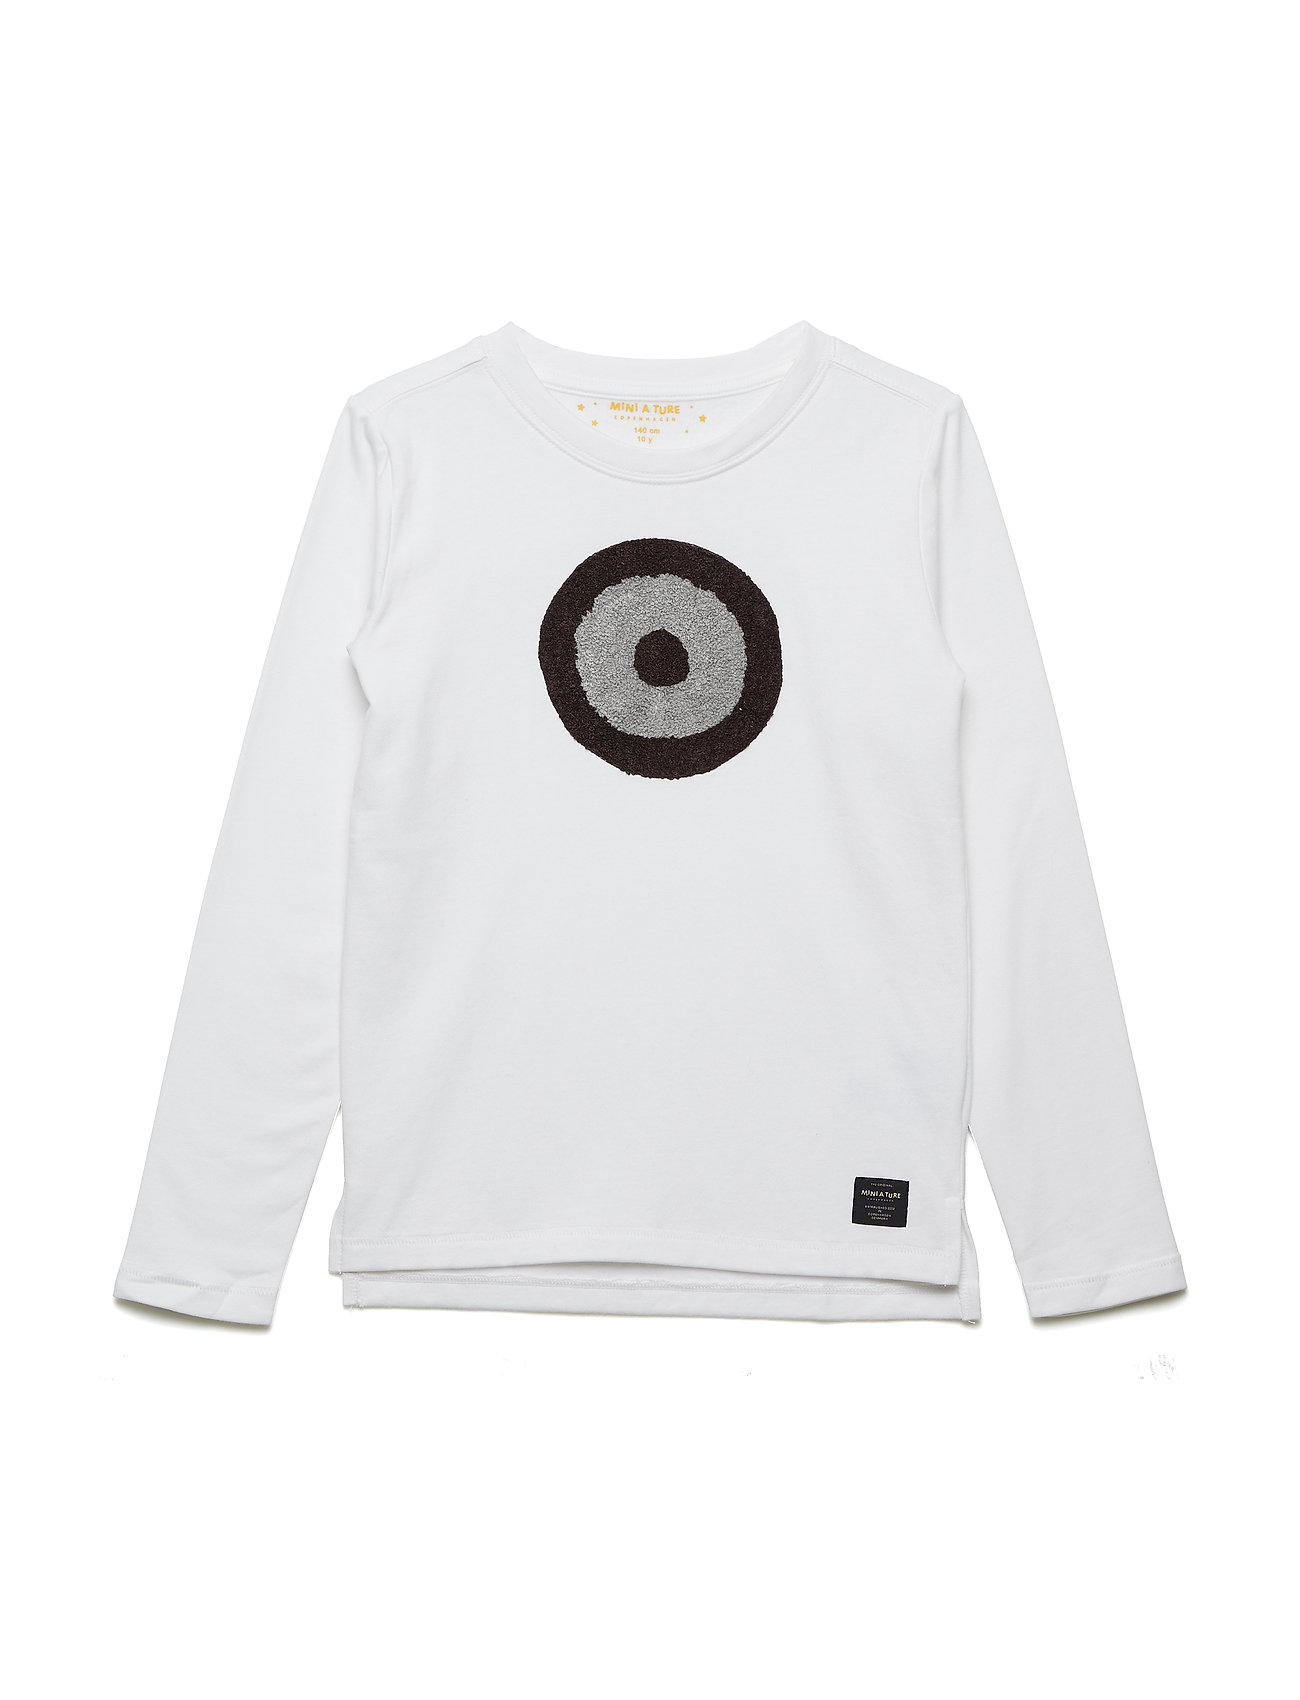 Mini A Ture Apollo T-shirt, MK - WHITE